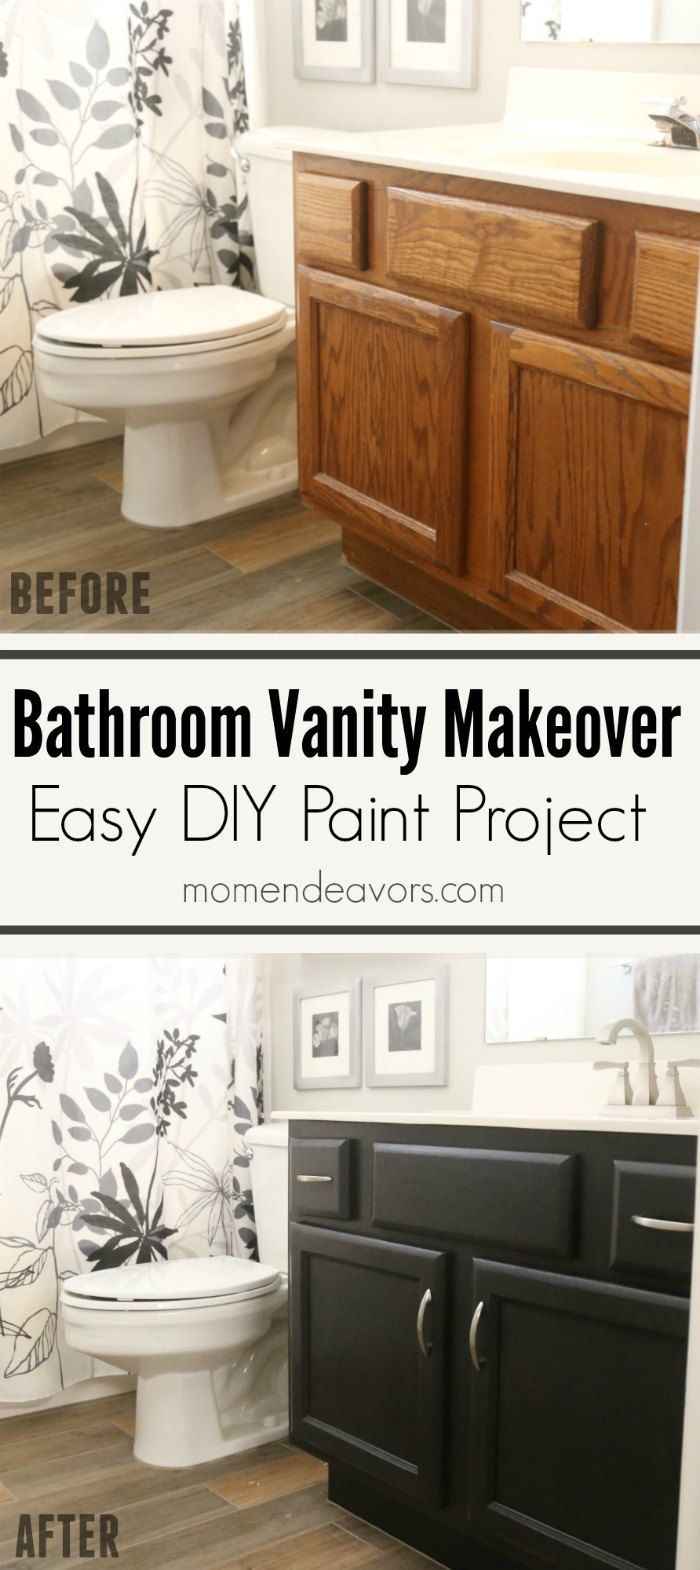 Paint Suggestions bathroom vanity makeover – easy diy home paint project. paint